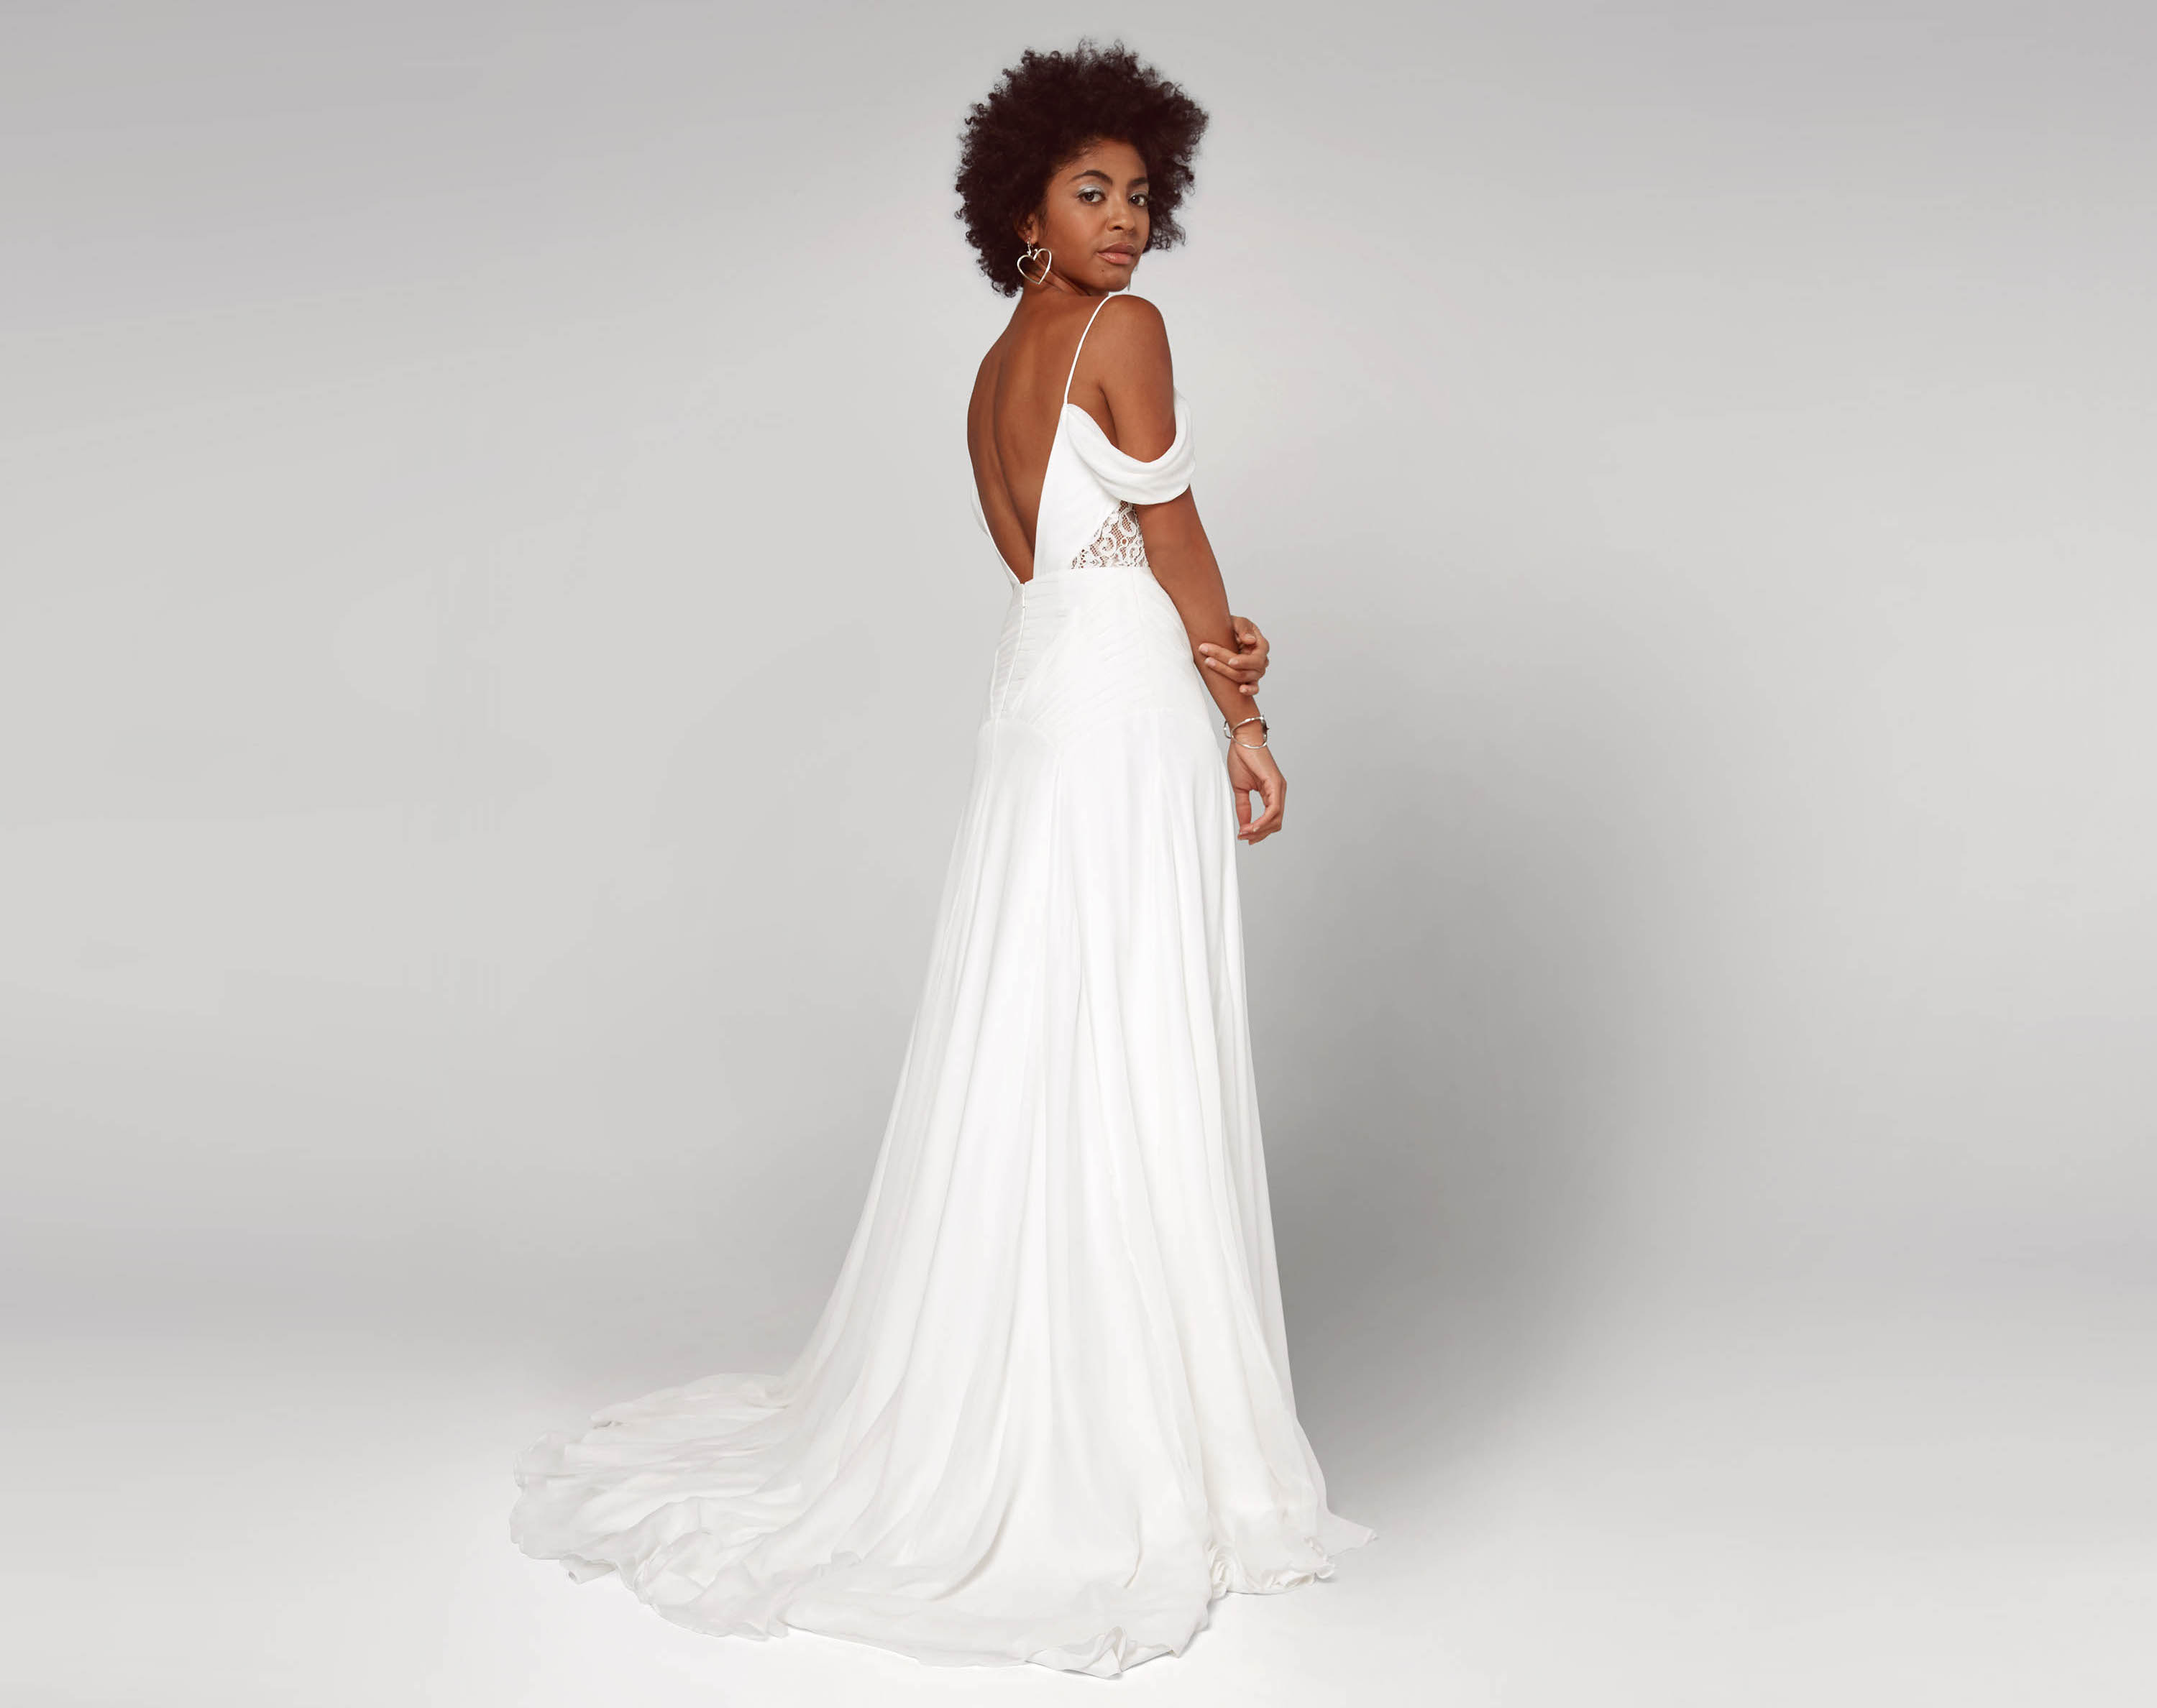 cheap wedding dresses fame partners bridal inexpensive wedding dresses A model wearing a white wedding gown with an open back thin straps and